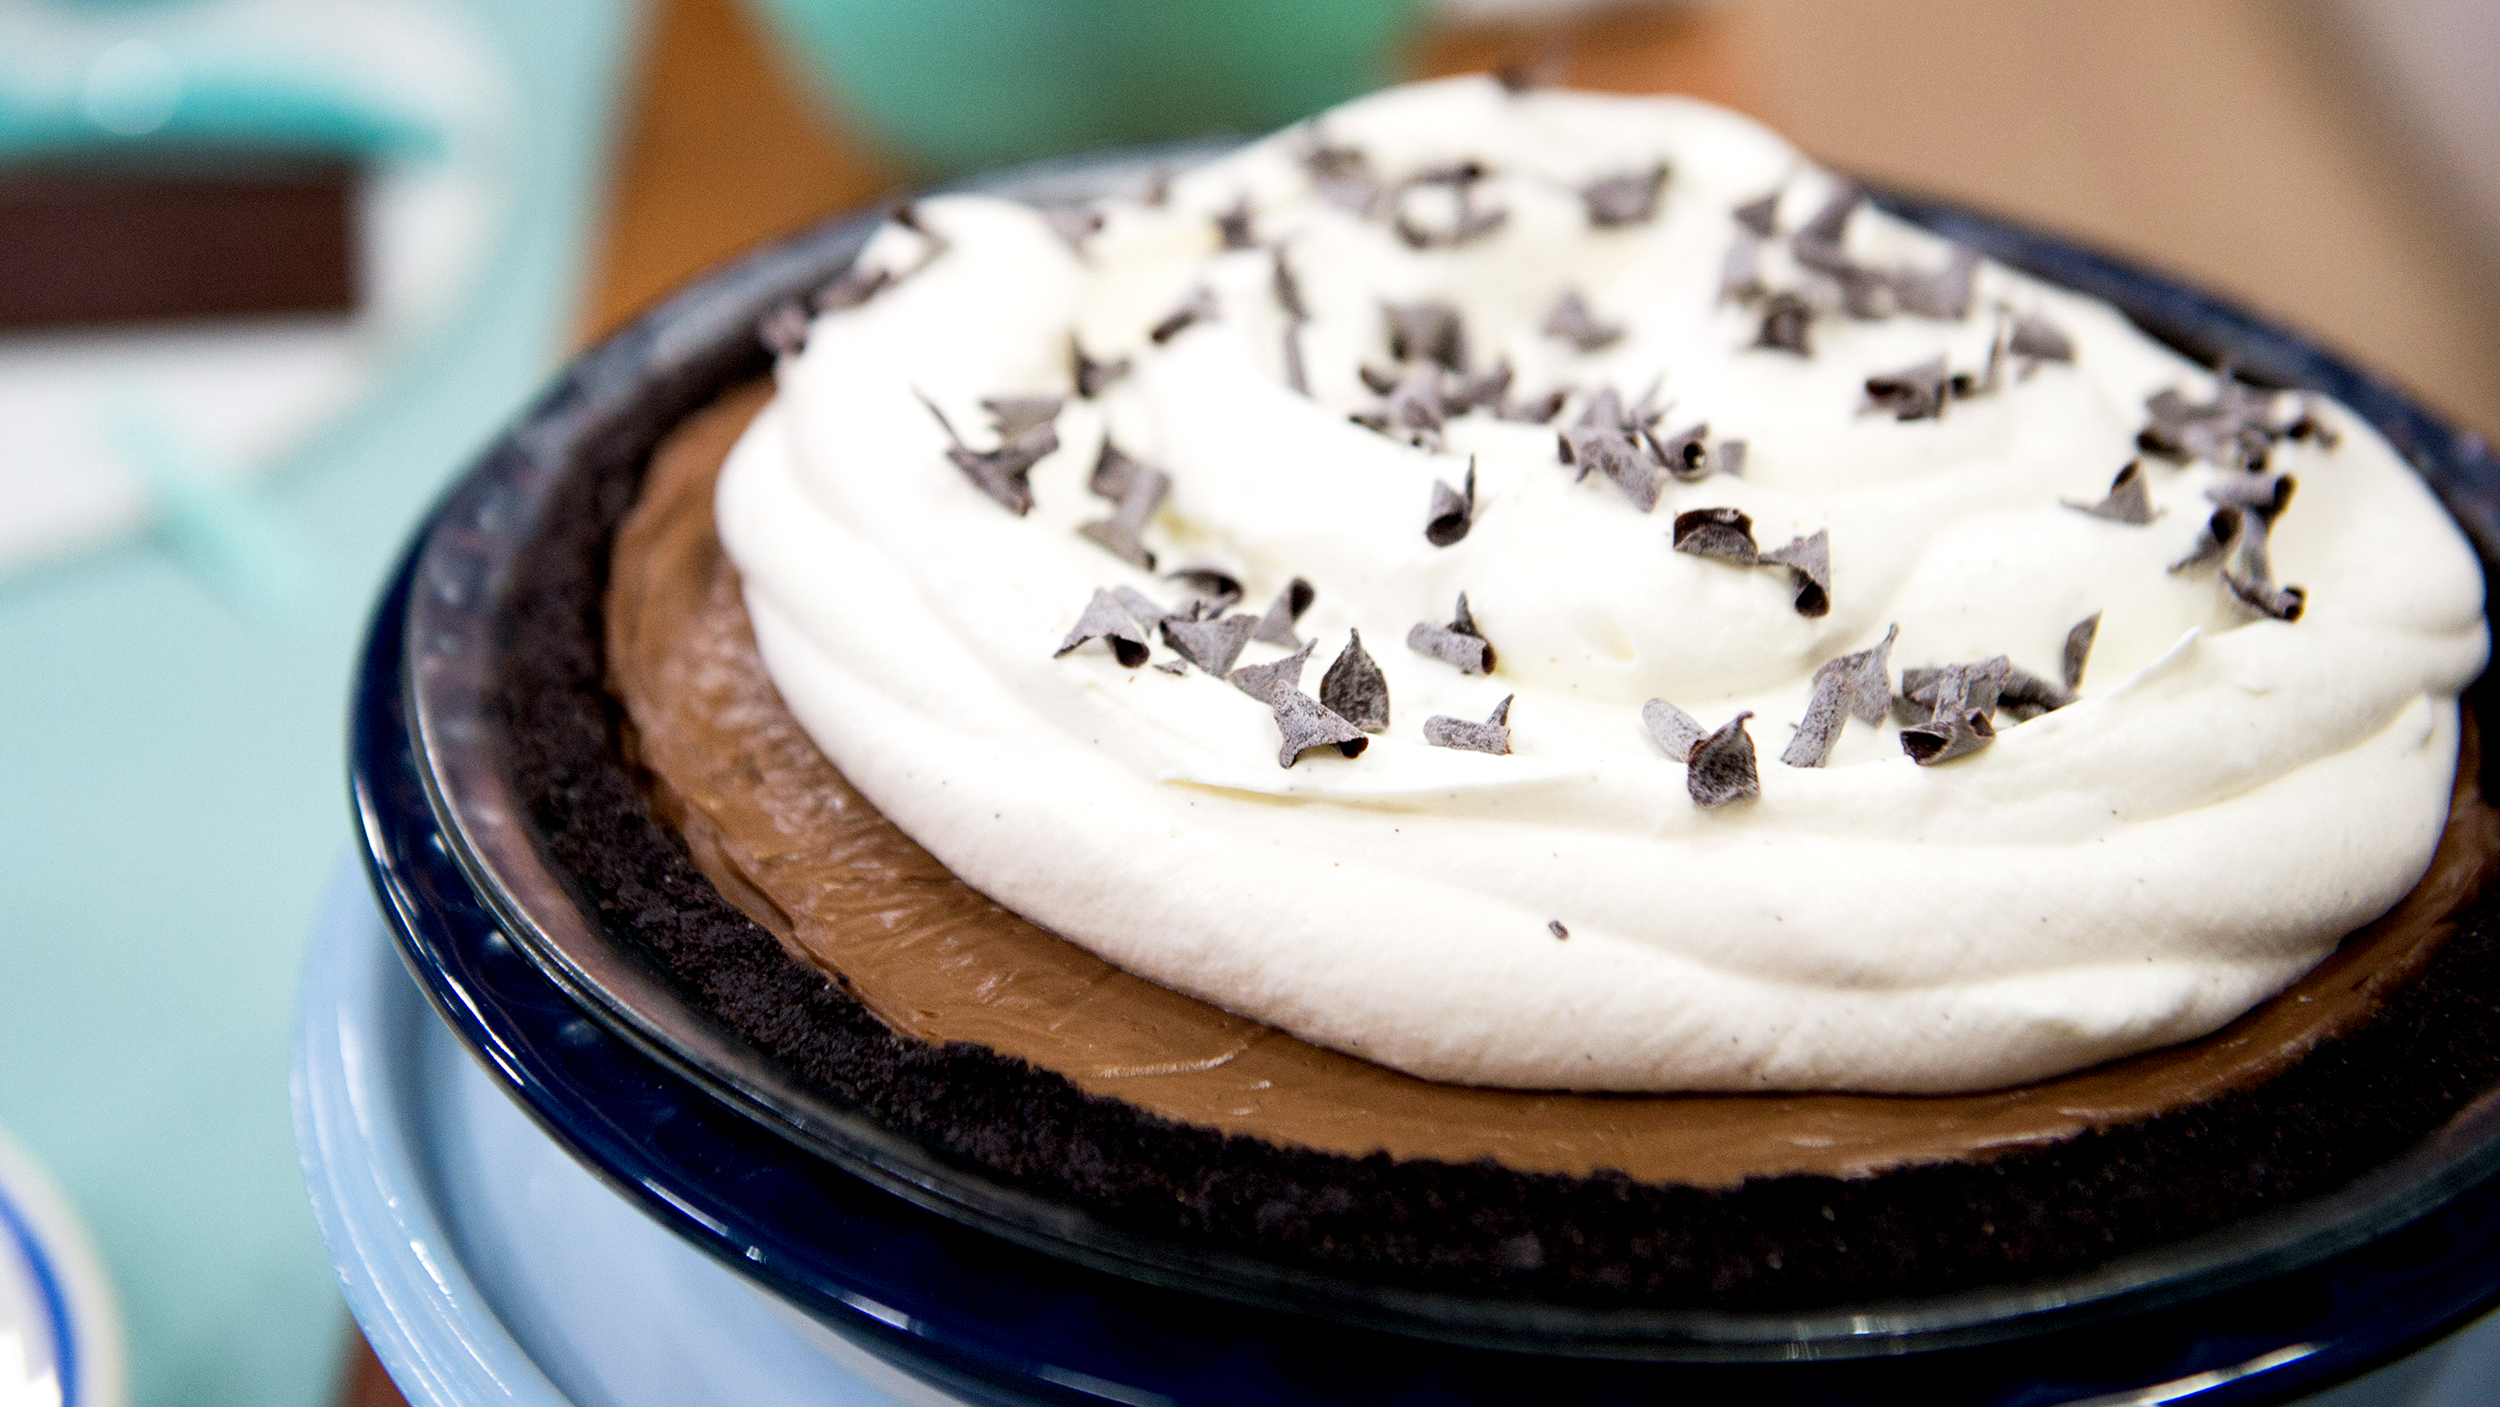 Chocolate Wafer Crust For Ice Cream Cake